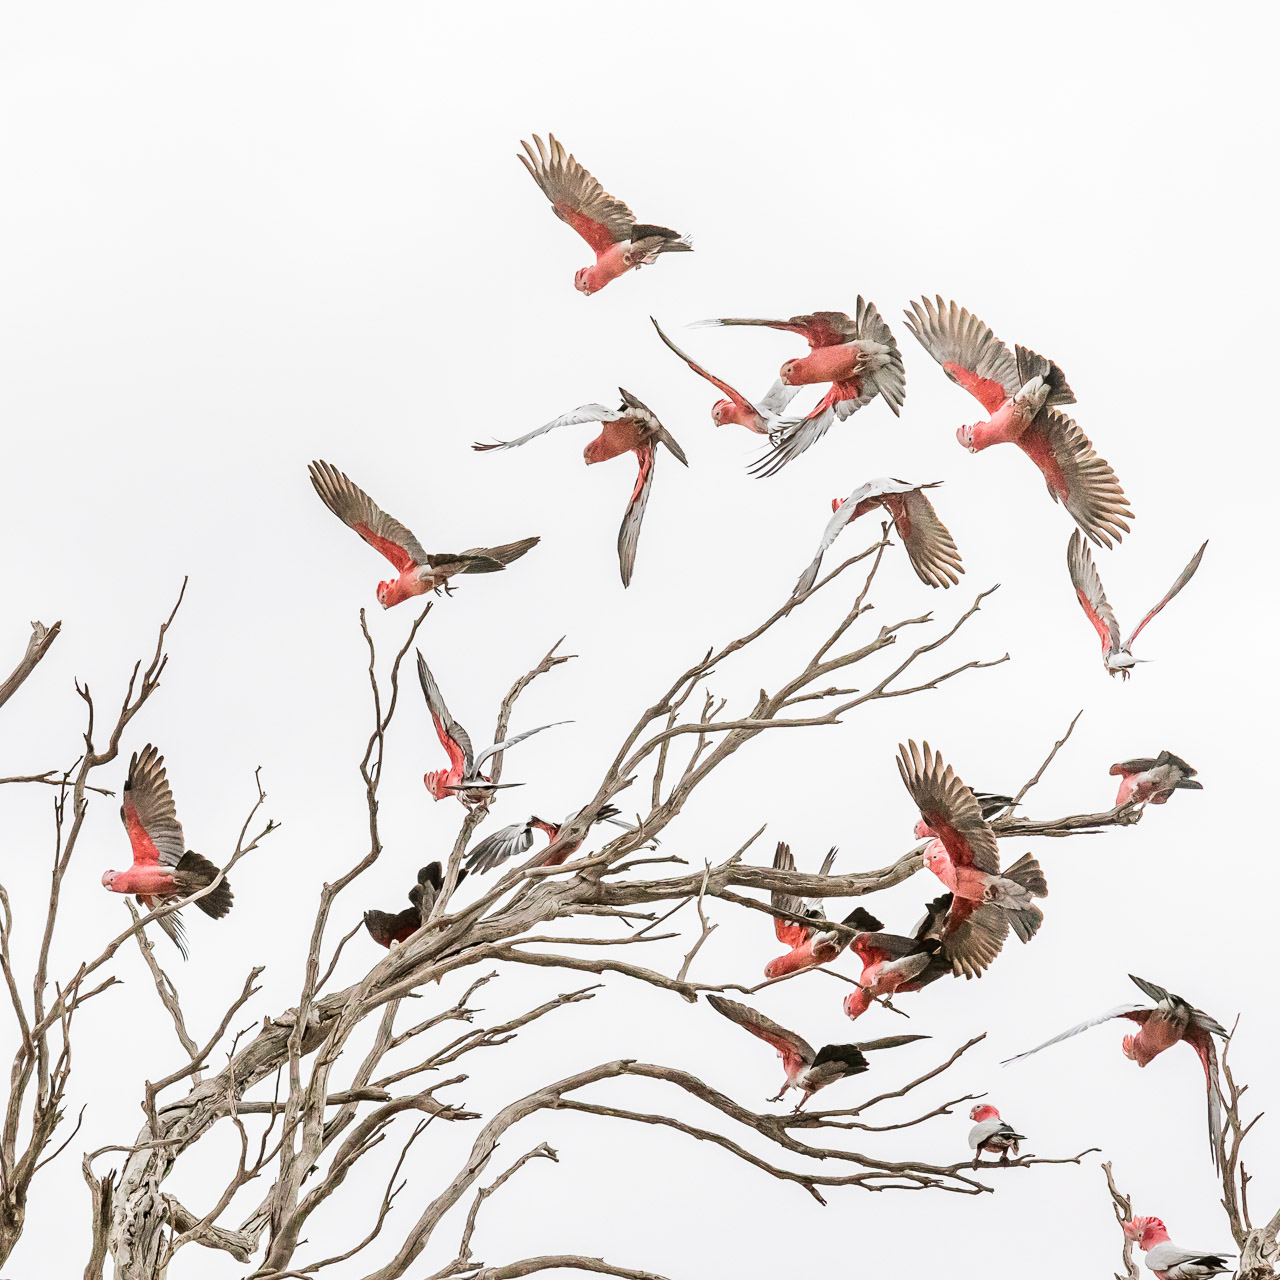 Galahs taking flight from an old eucalyptus tree